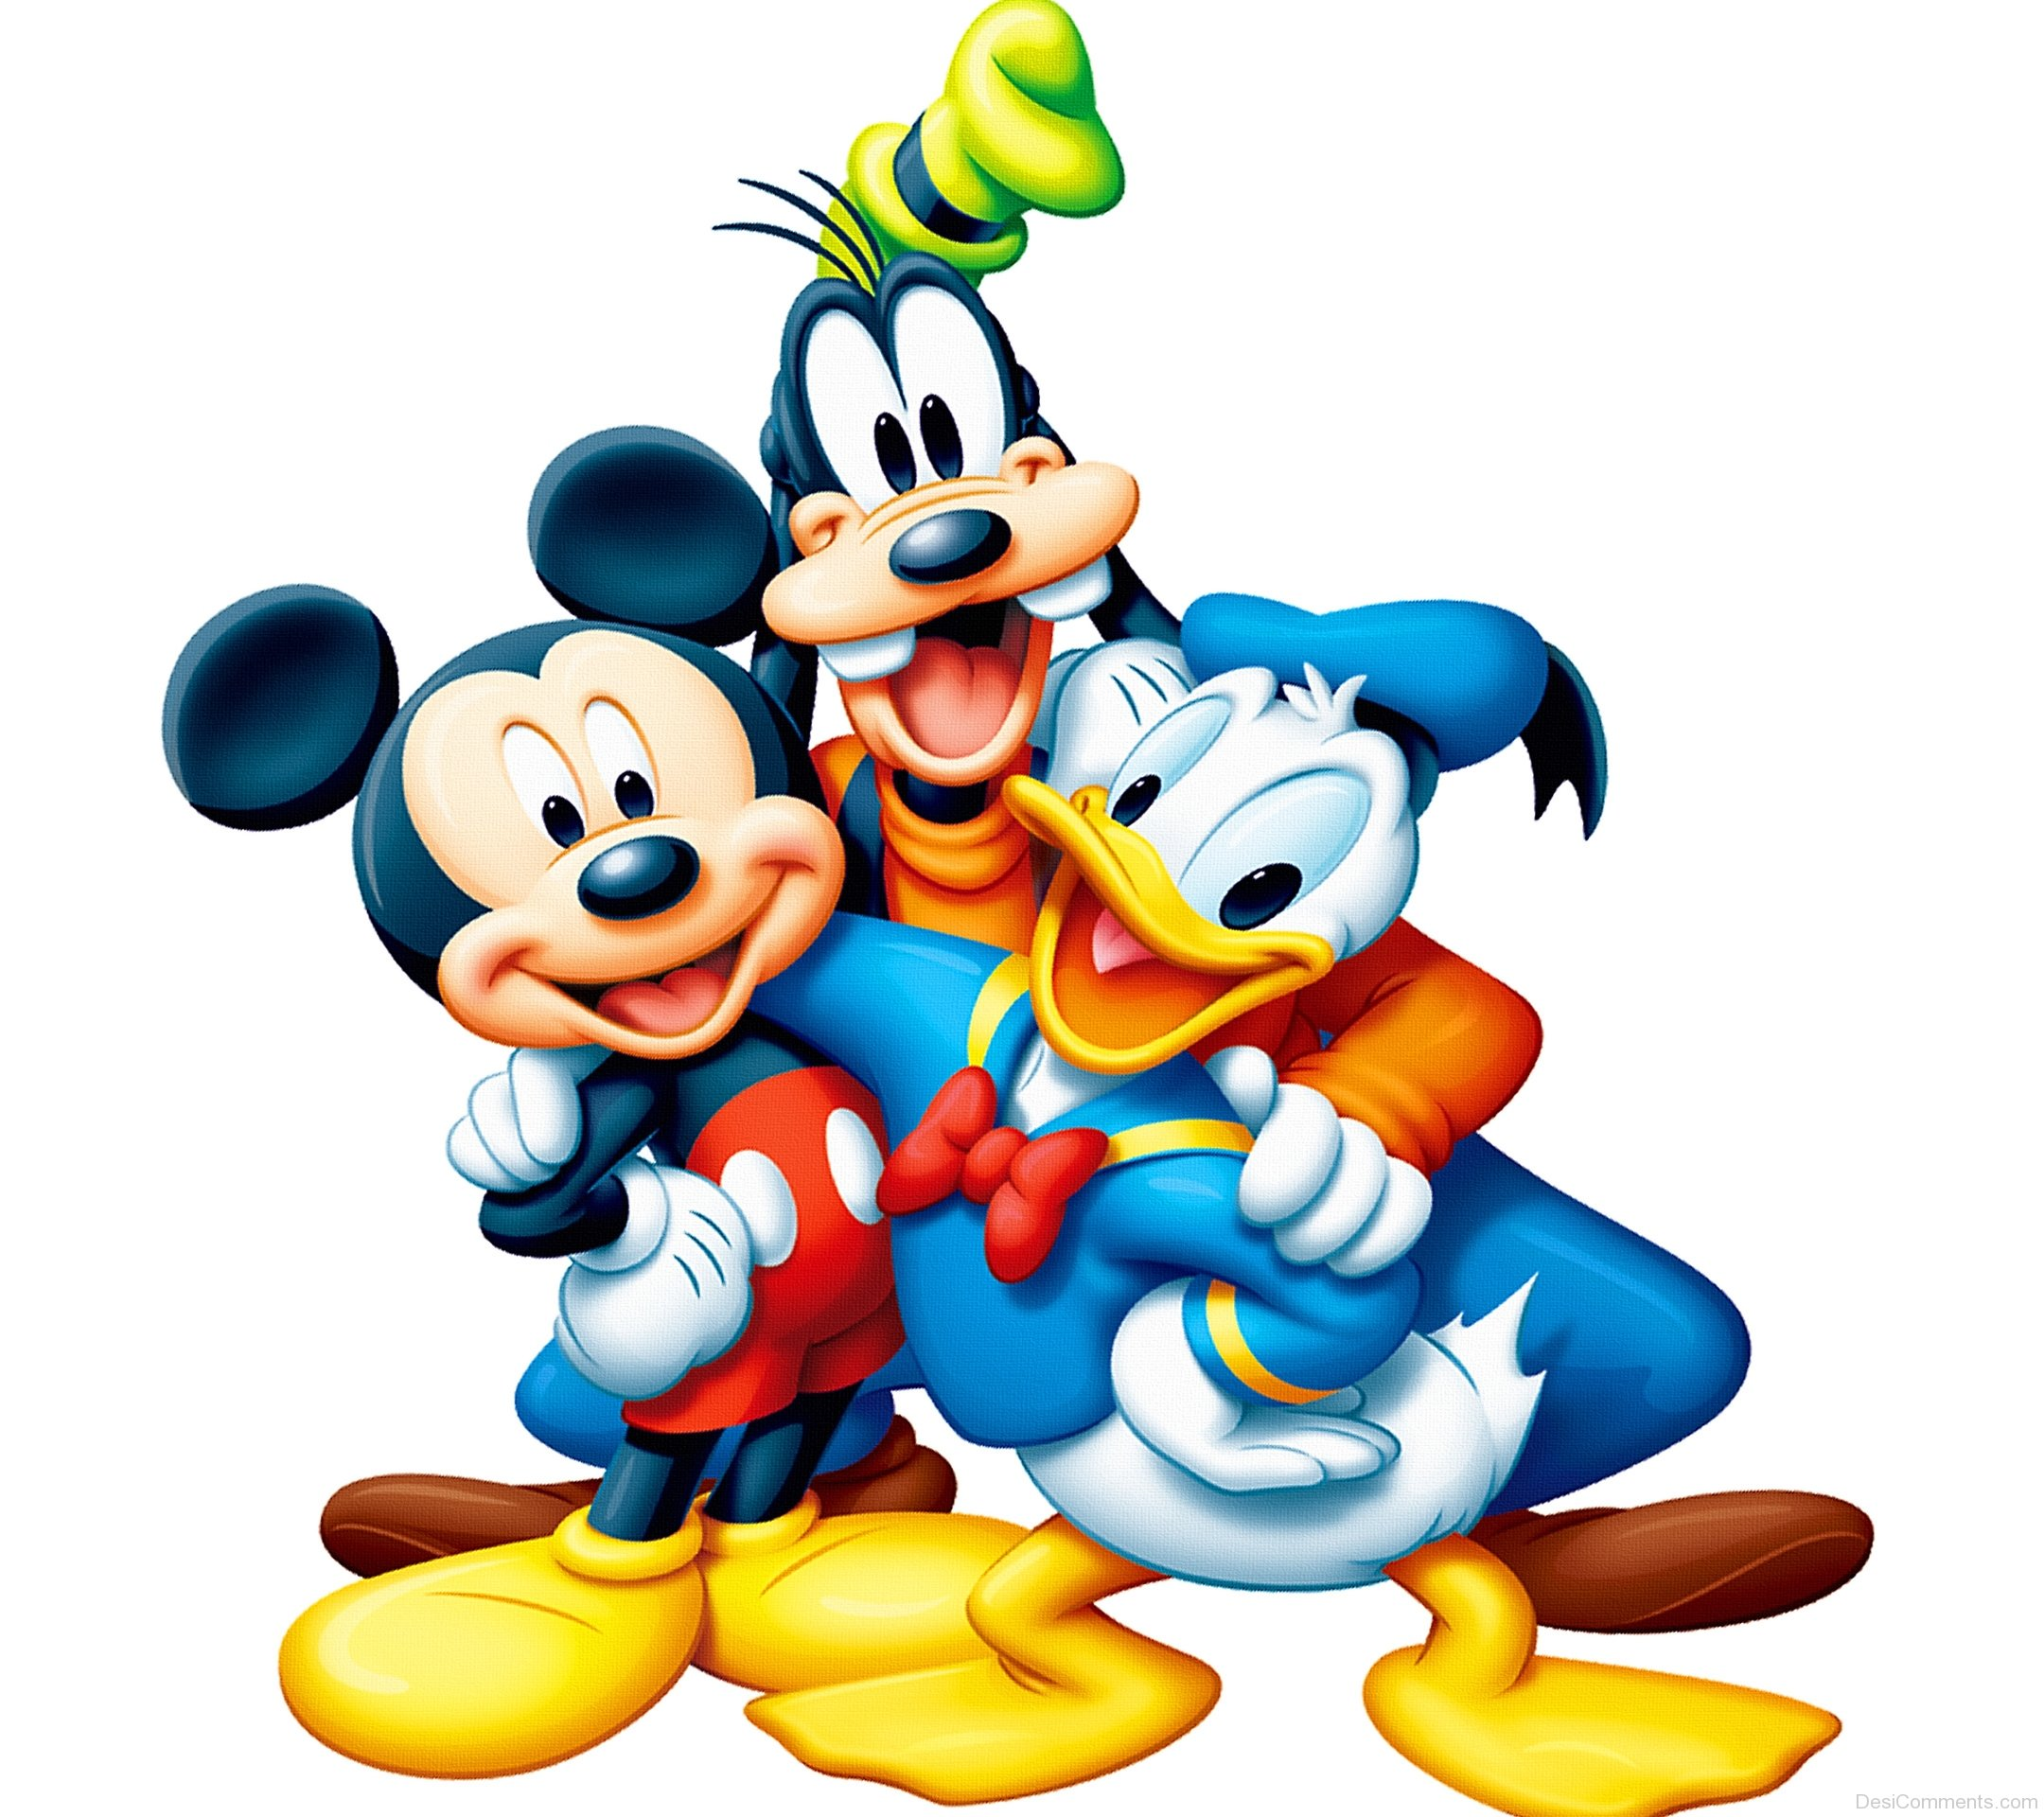 Donald Duck Wallpaper: Donald Duck Pictures, Images, Graphics For Facebook